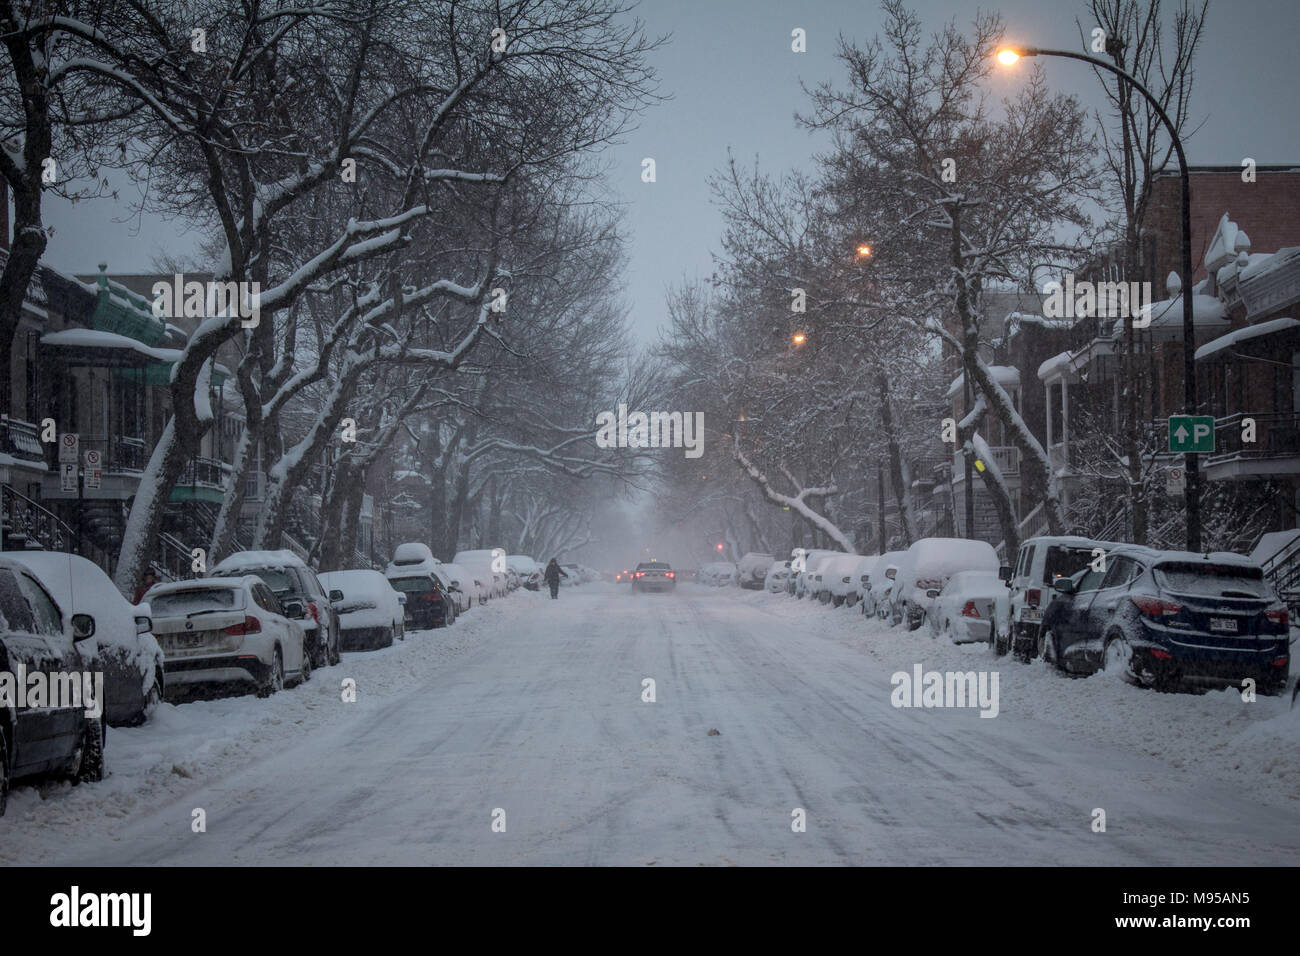 MONTREAL, CANADA - DECEMBER 29, 2016: Typical North American residential  street covered in snow in a residential suburban part of Montreal, Quebec, C - Stock Image